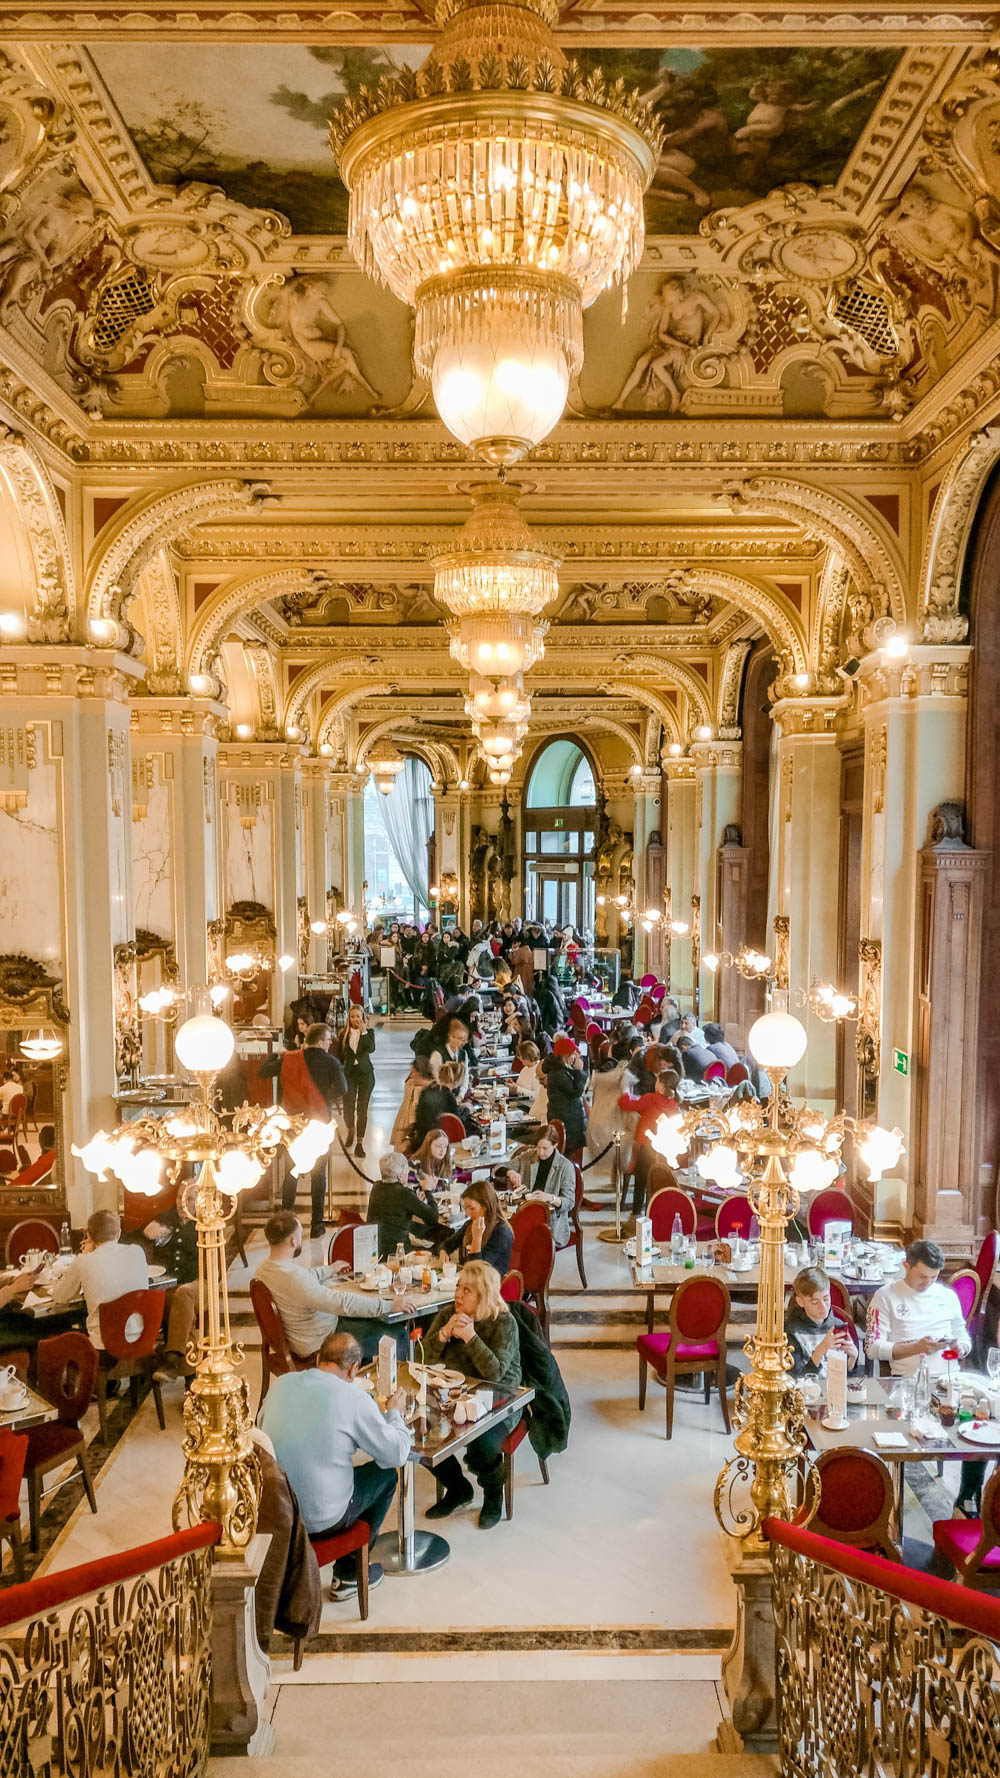 New York Palace Café in Budapest, Hungary - Is it worth visiting? | Aliz's Wonderland